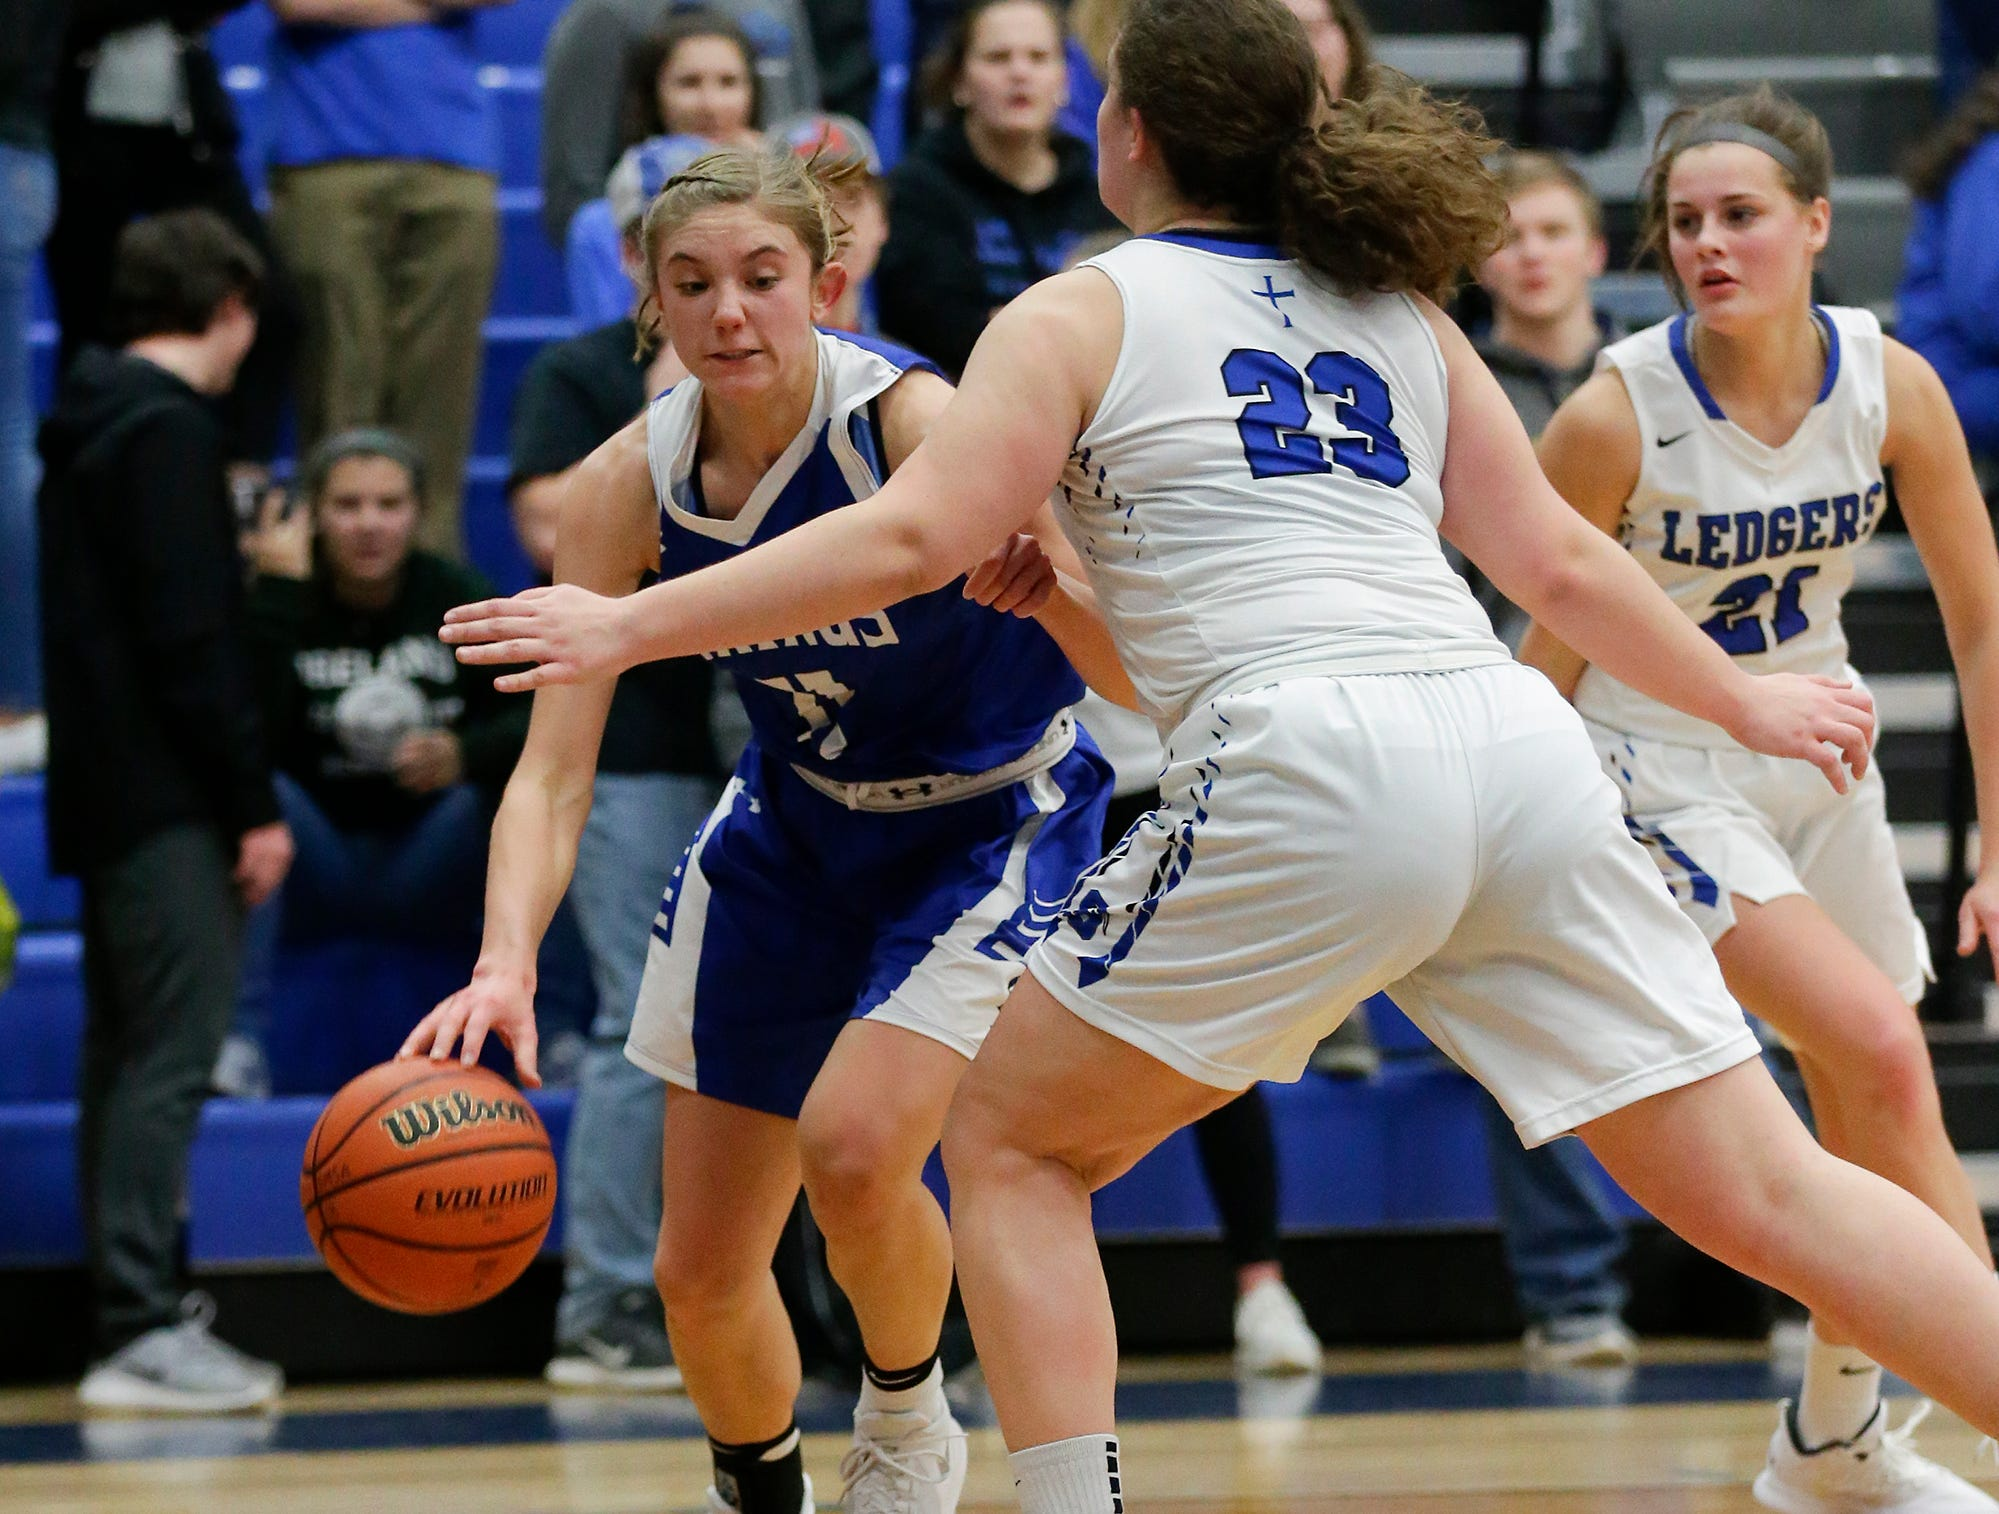 Winnebago Lutheran Academy girls basketball's Alyssa Lorenz makes her way torwards the basket against St. Mary's Springs Academy's Cecelia Rodriguez during their game Tuesday, December 18, 2018 in Fond du Lac. Winnebago Lutheran Academy won the game 58-54. Doug Raflik/USA TODAY NETWORK-Wisconsin